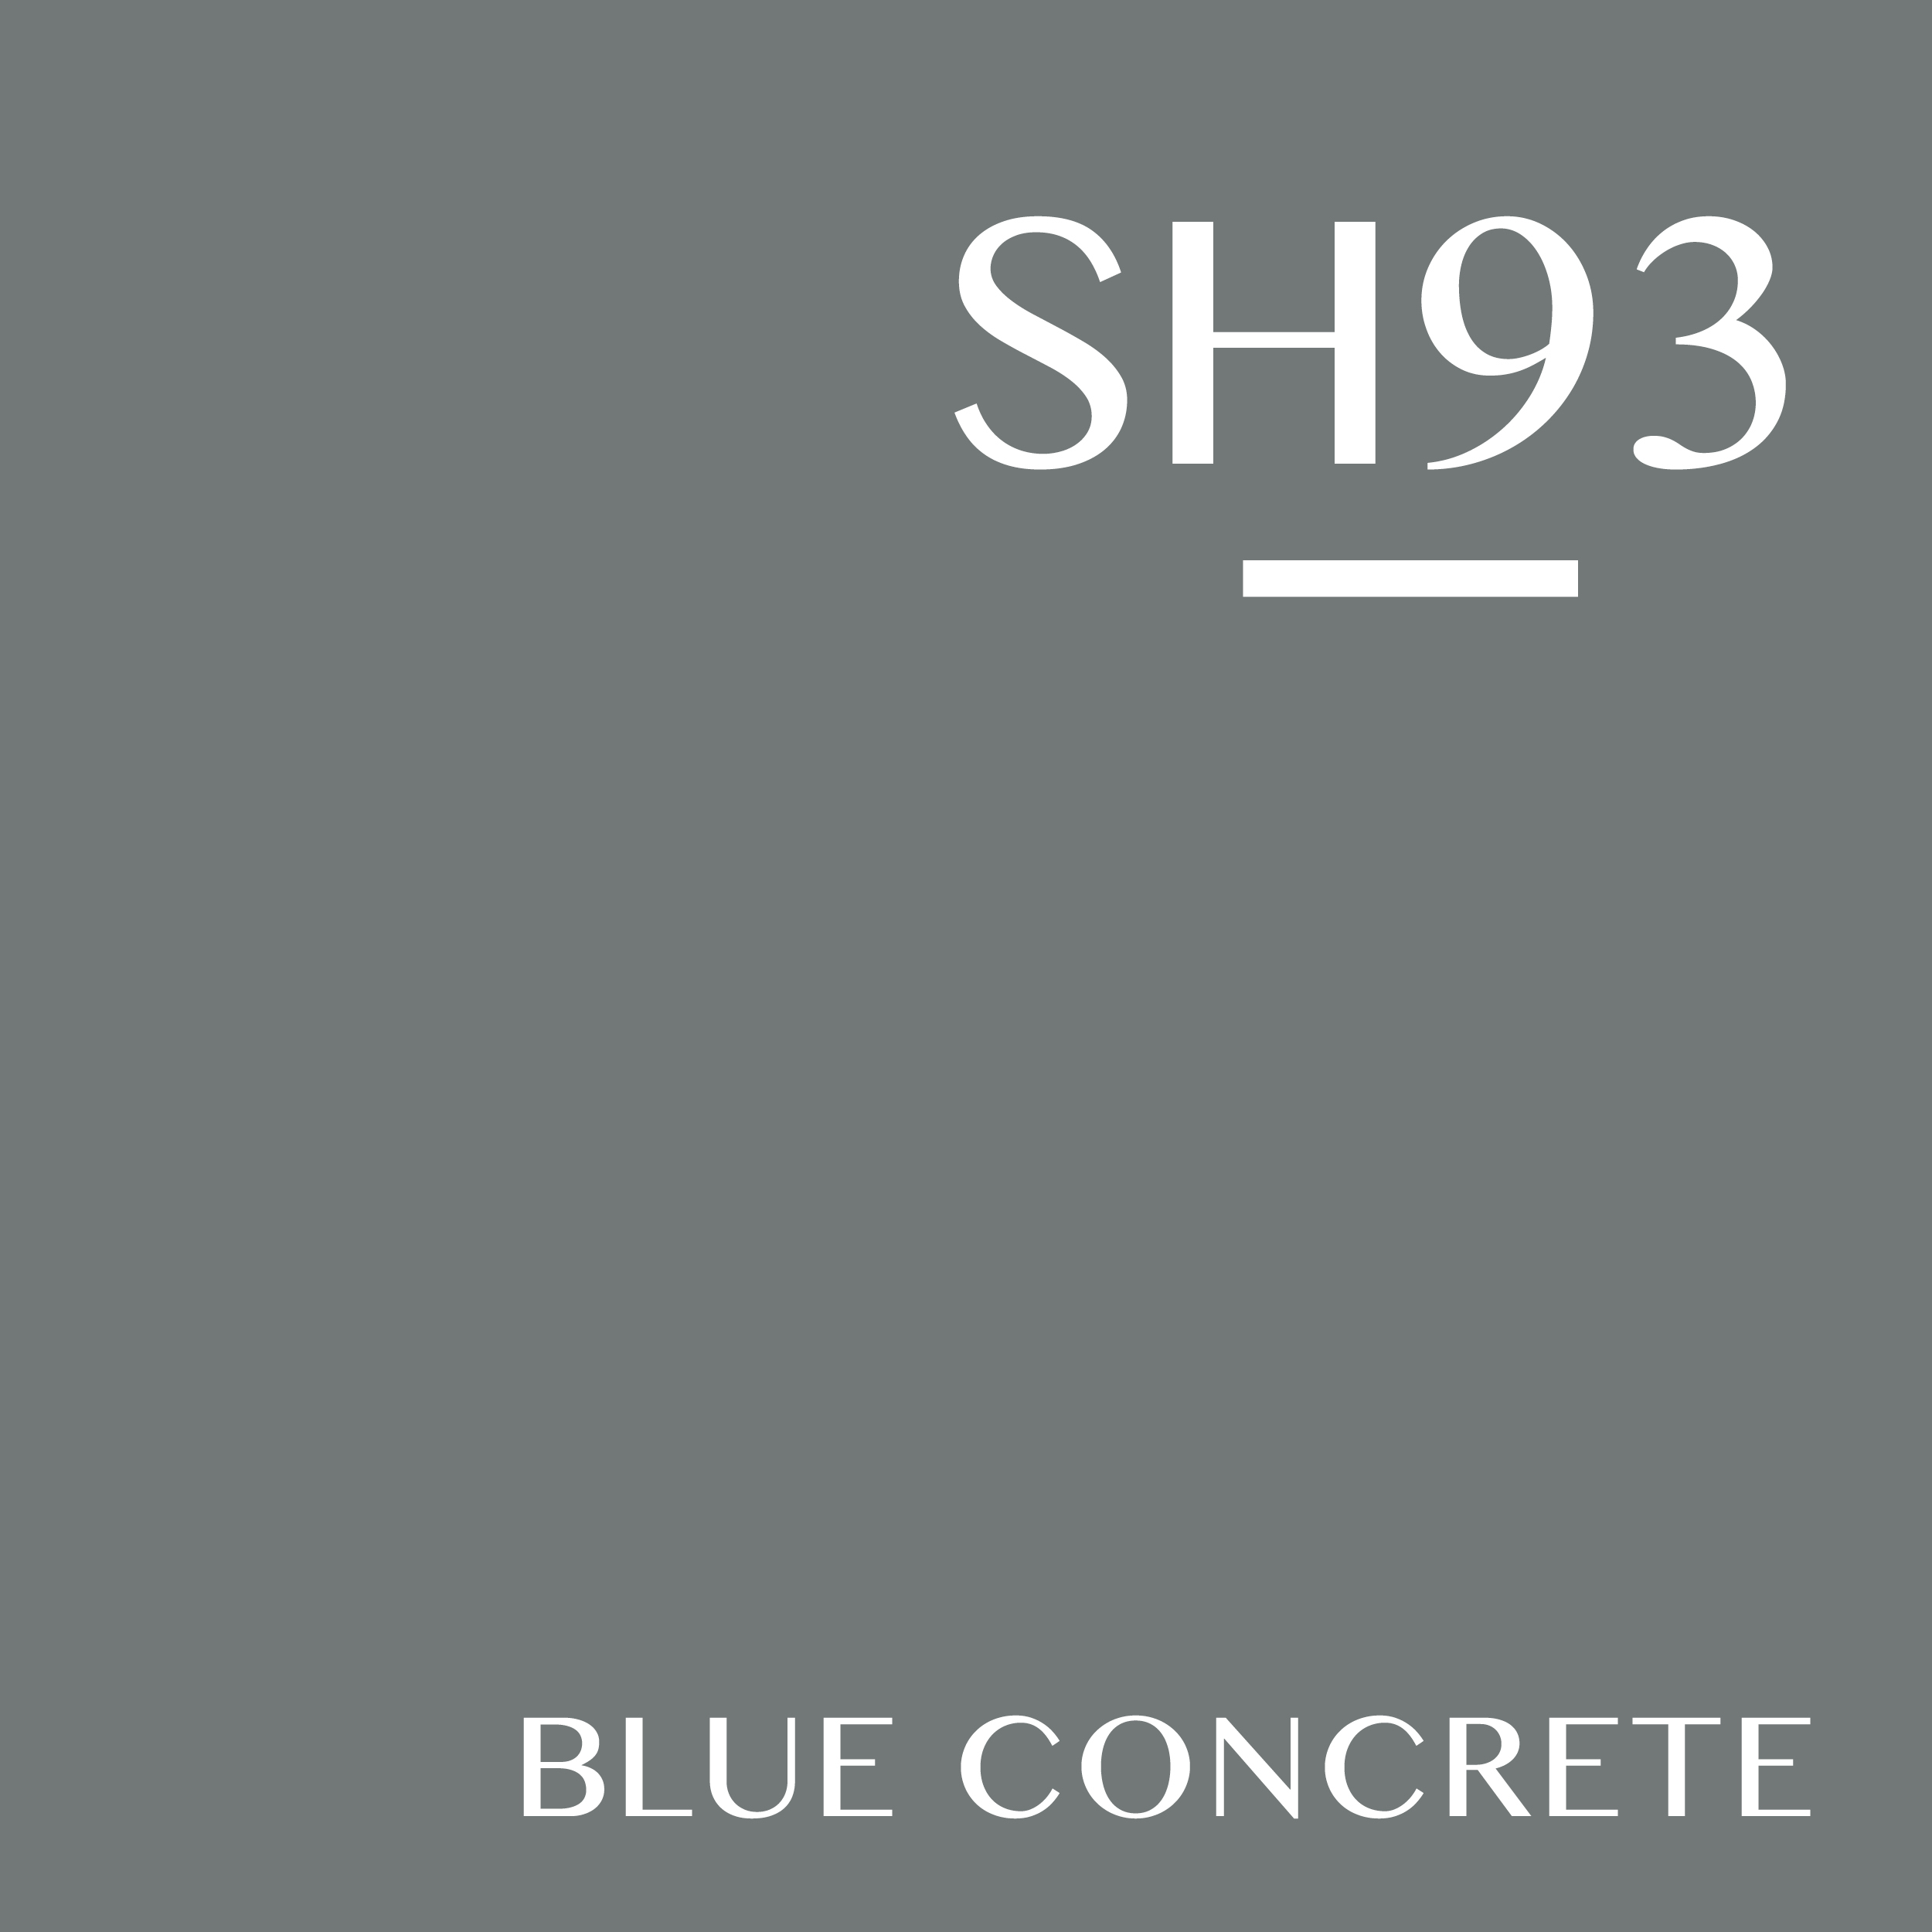 SHADE collection color blocks93